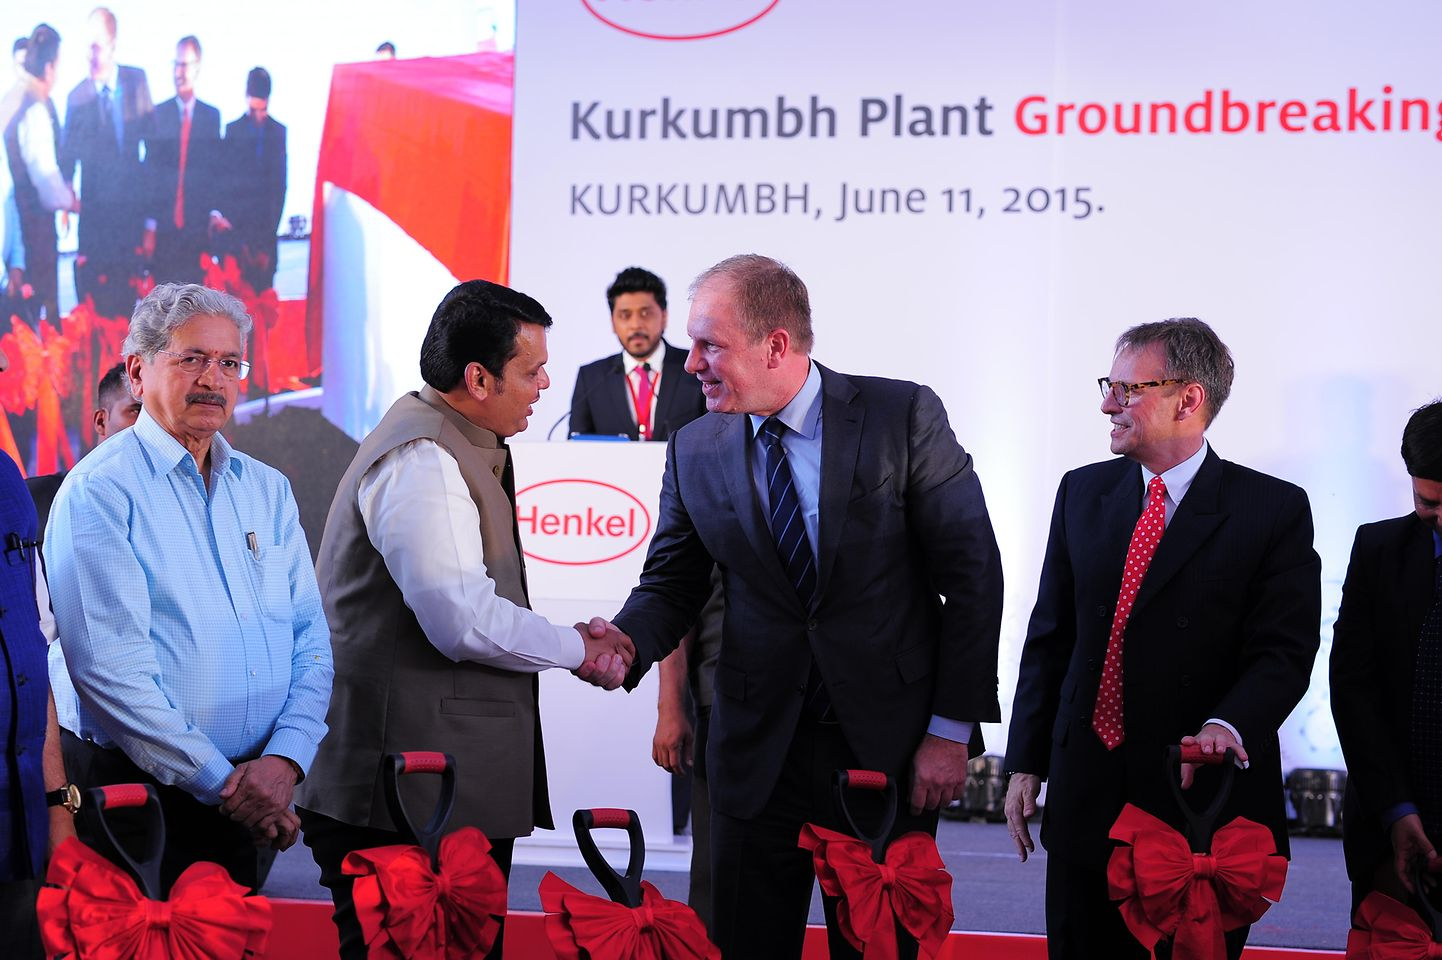 Paul Kirsch (m.), Senior VP, Supply & Operations, Henkel Adhesive Technologies and President Henkel India, Jeremy Hunter (r.), welcomed Chief Minister of Maharashtra, Devendra Fadnavis (l.) and other dignitaries from the Maharashtra government